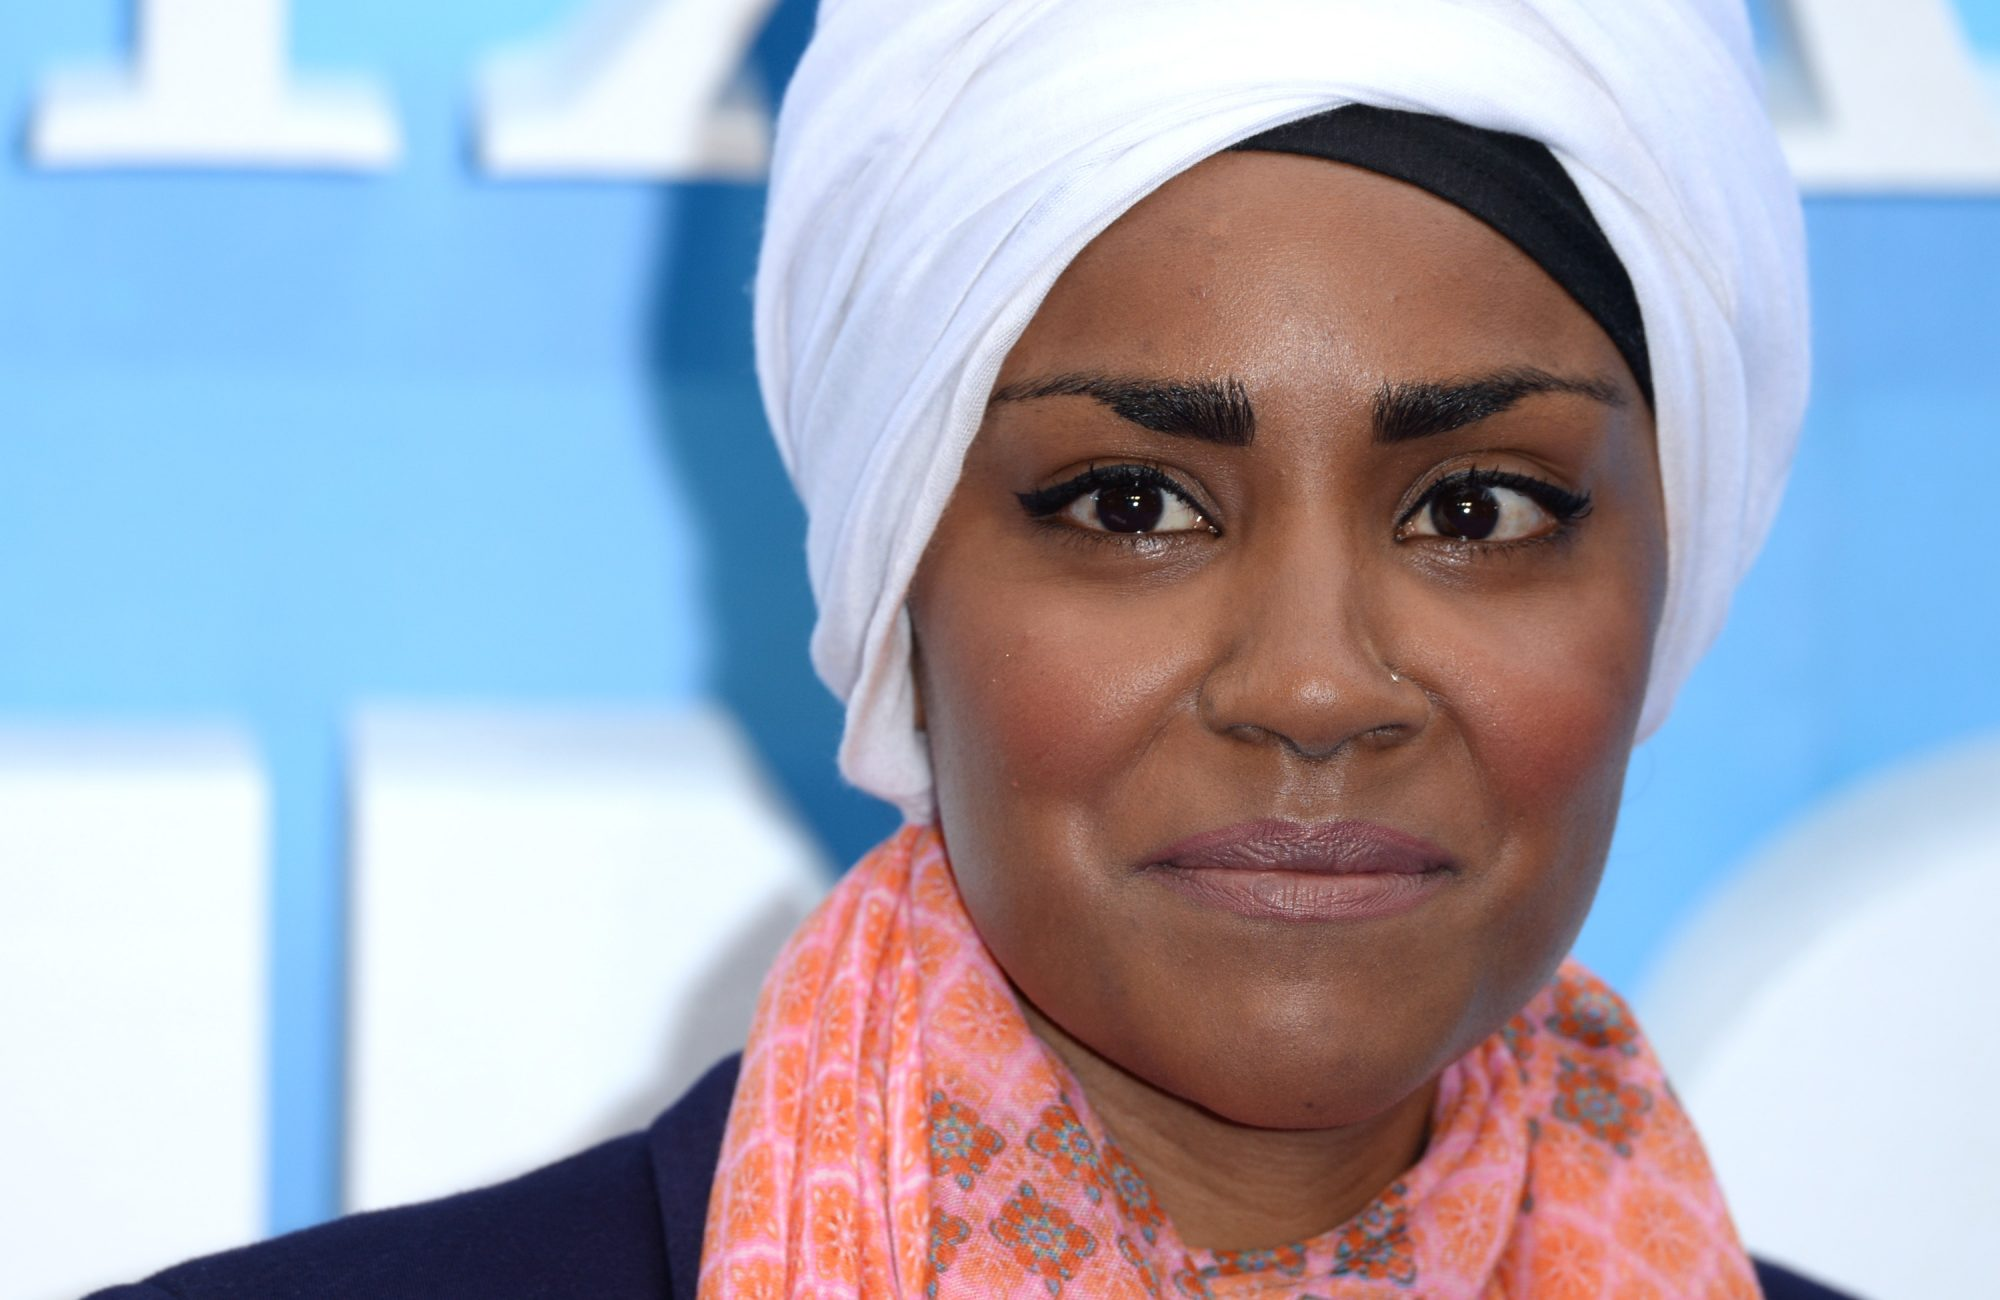 LONDON, ENGLAND - JULY 10: Nadiya Hussain attends the UK Premiere of 'Finding Dory' at Odeon Leicester Square on July 10, 2016 in London, England.